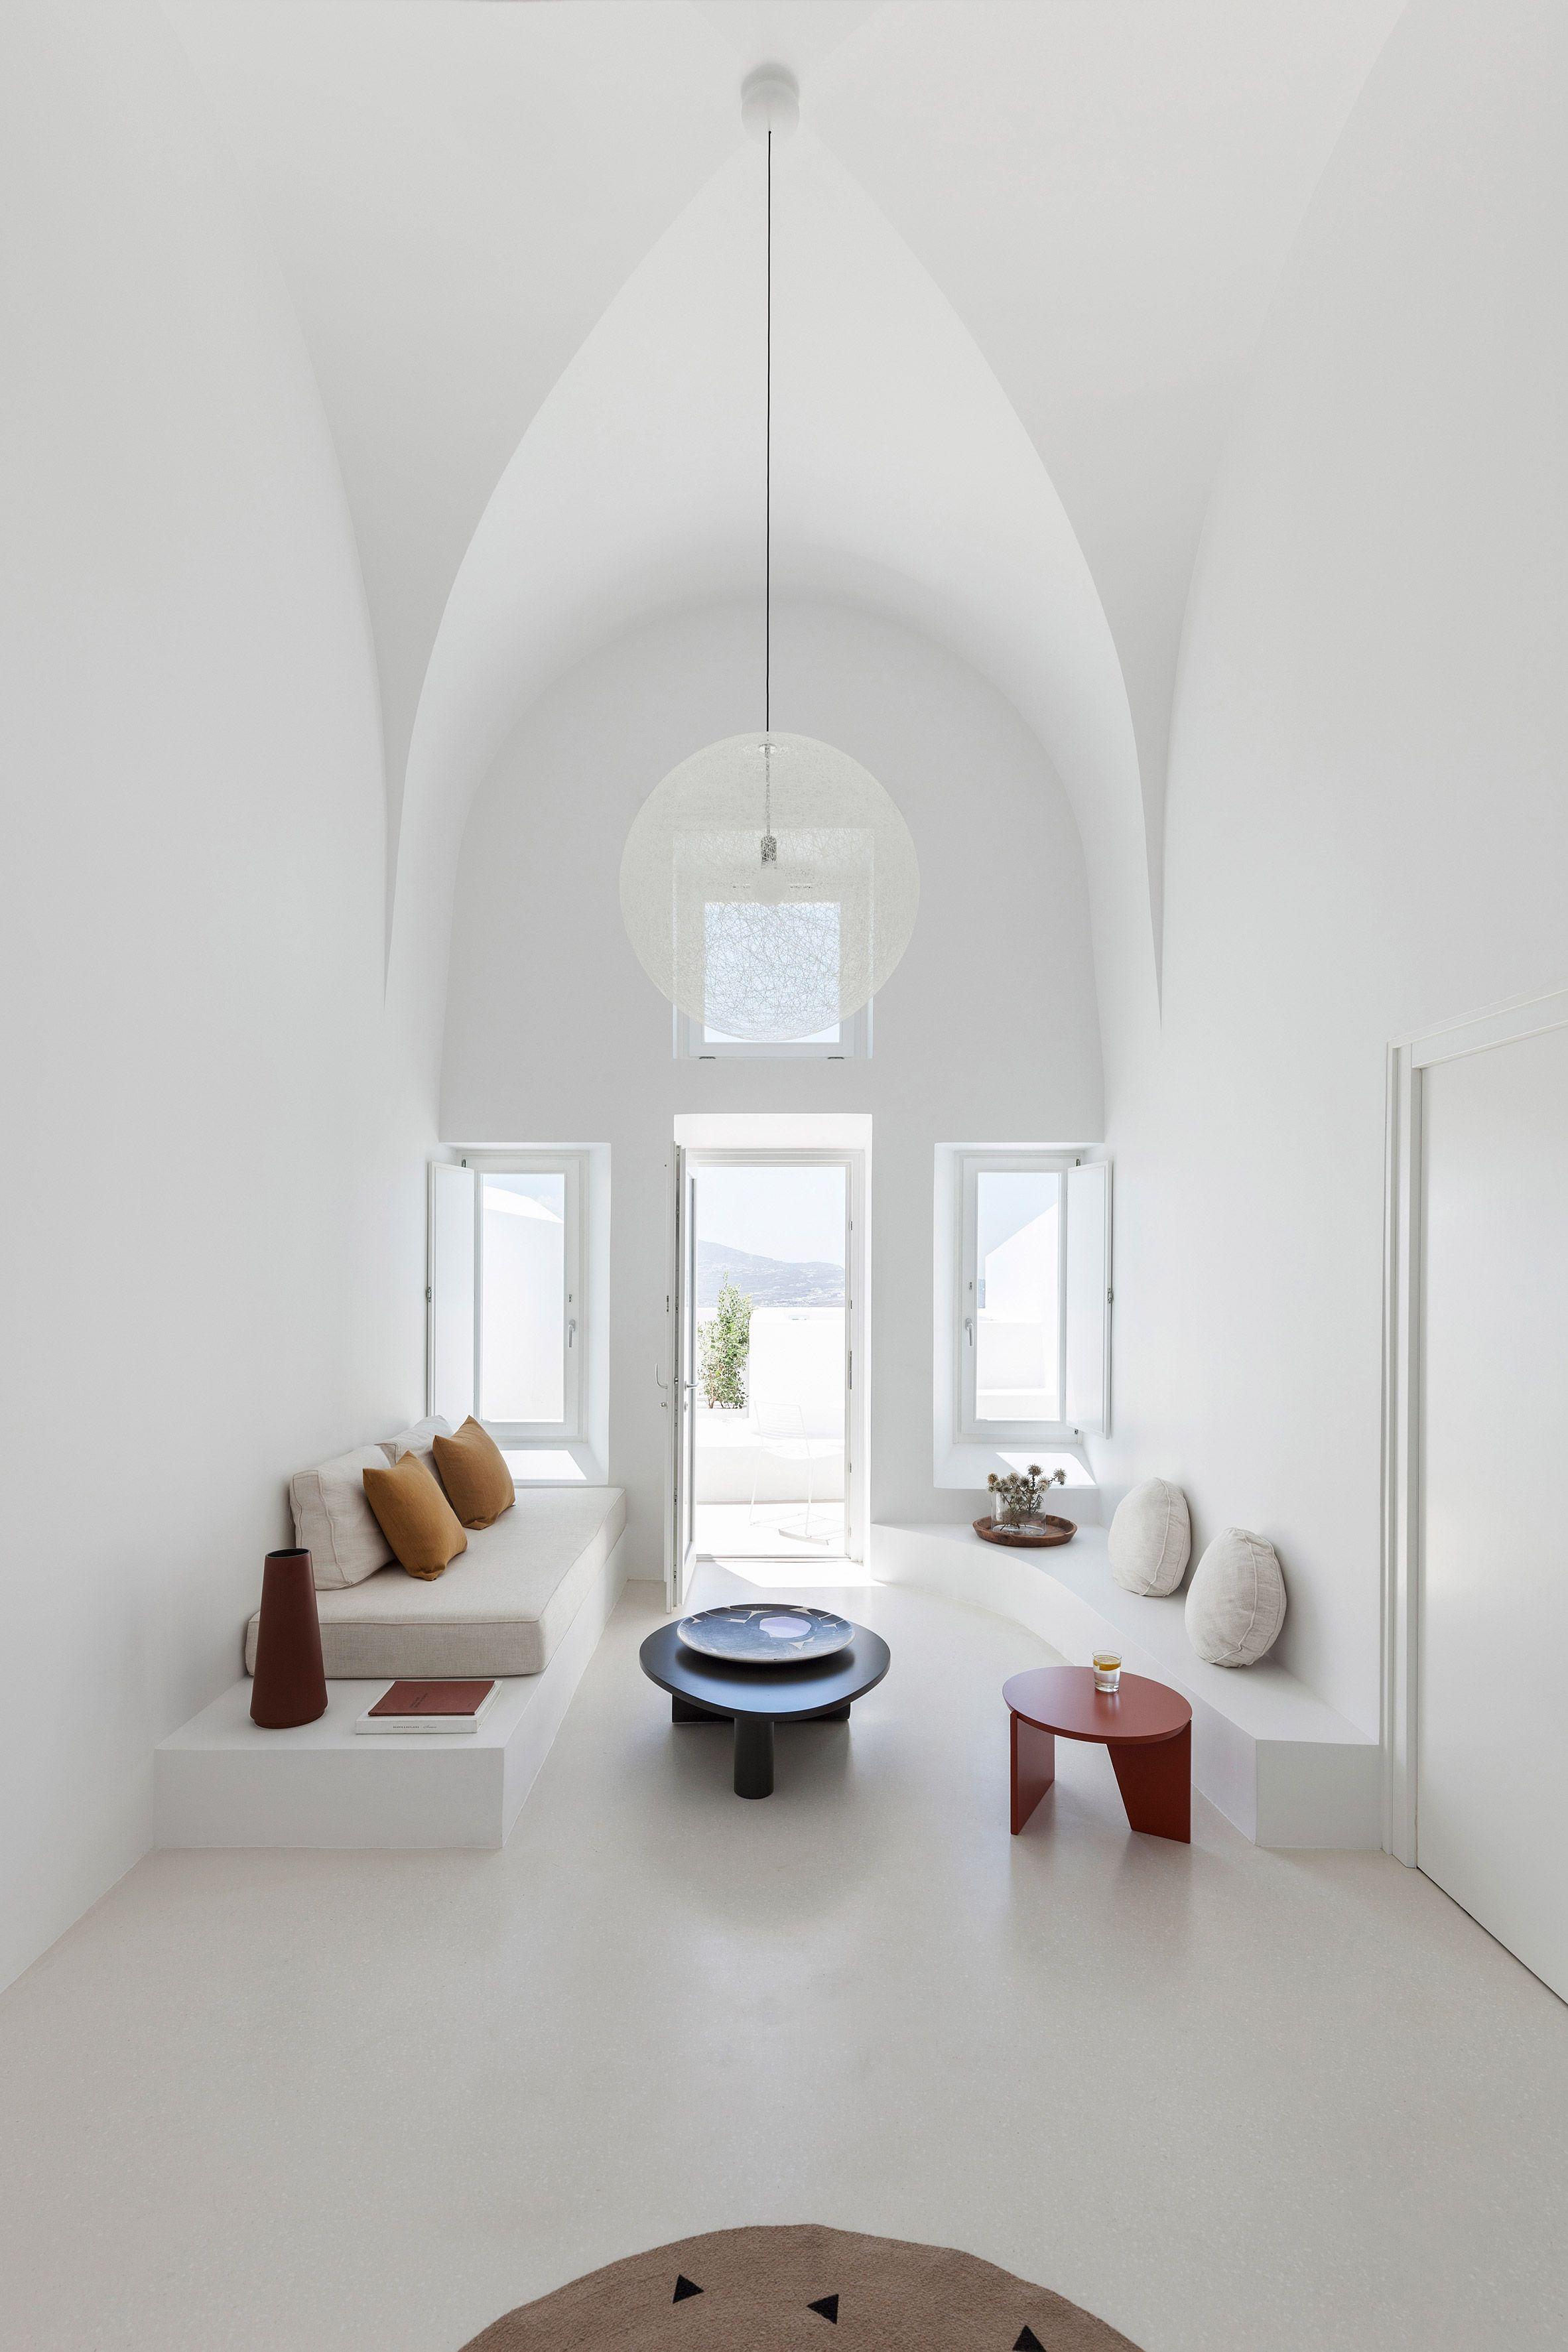 White Plaster Is Used Throughout The Interior To Unify The Spaces